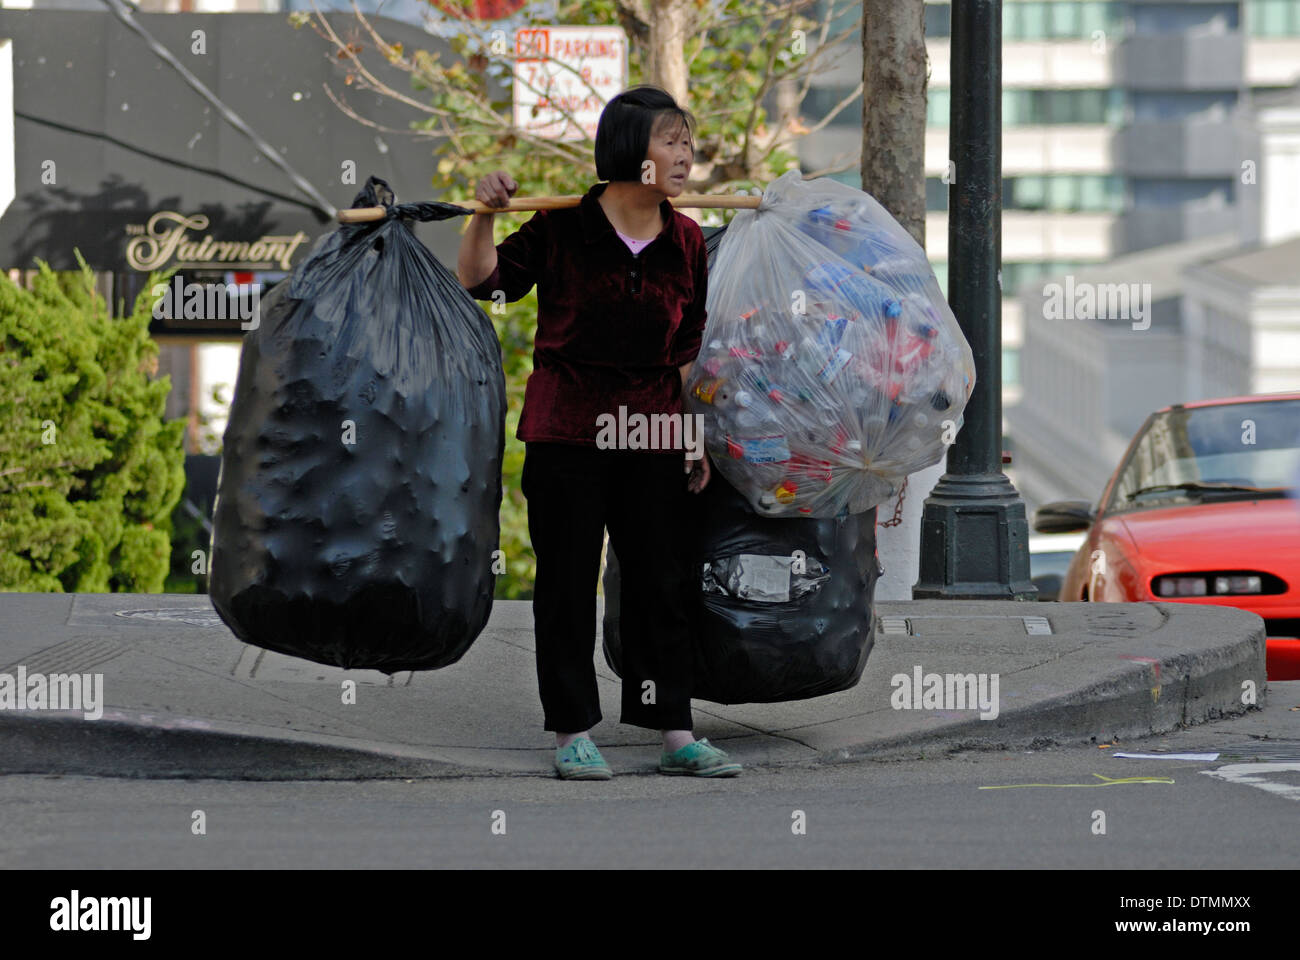 Chinese woman carrying large bags of recyclables on California Street in San Francisco, California. - Stock Image